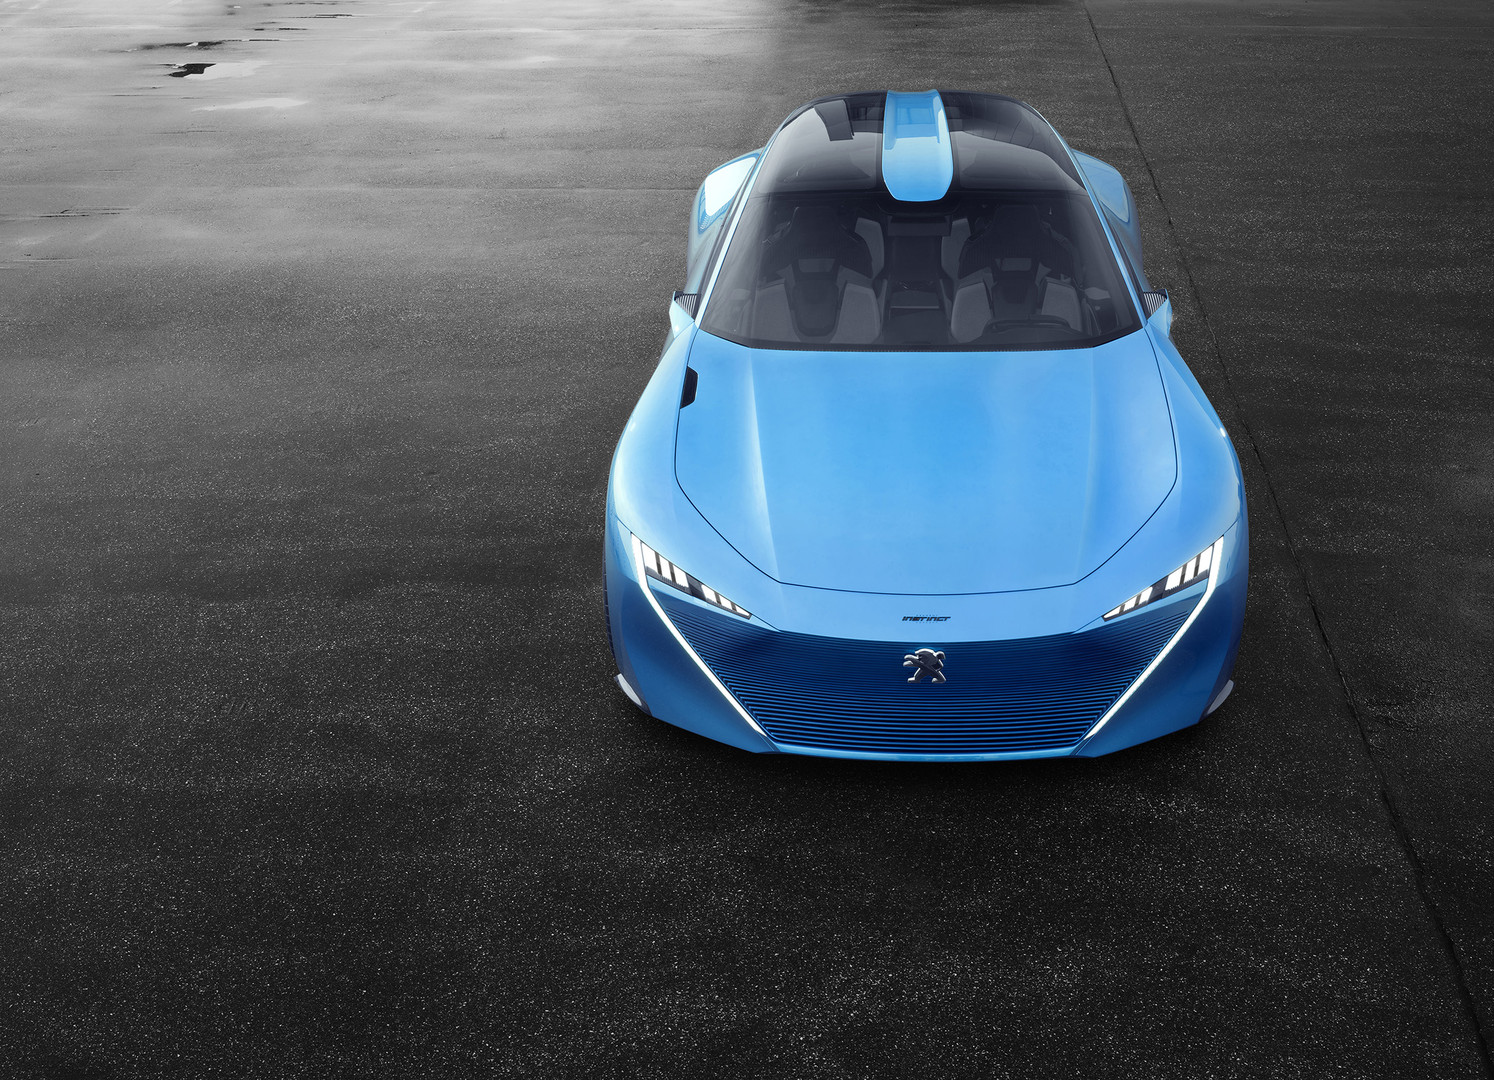 peugeot-instinct_prototype-show-car_demonstrateur_axtrid